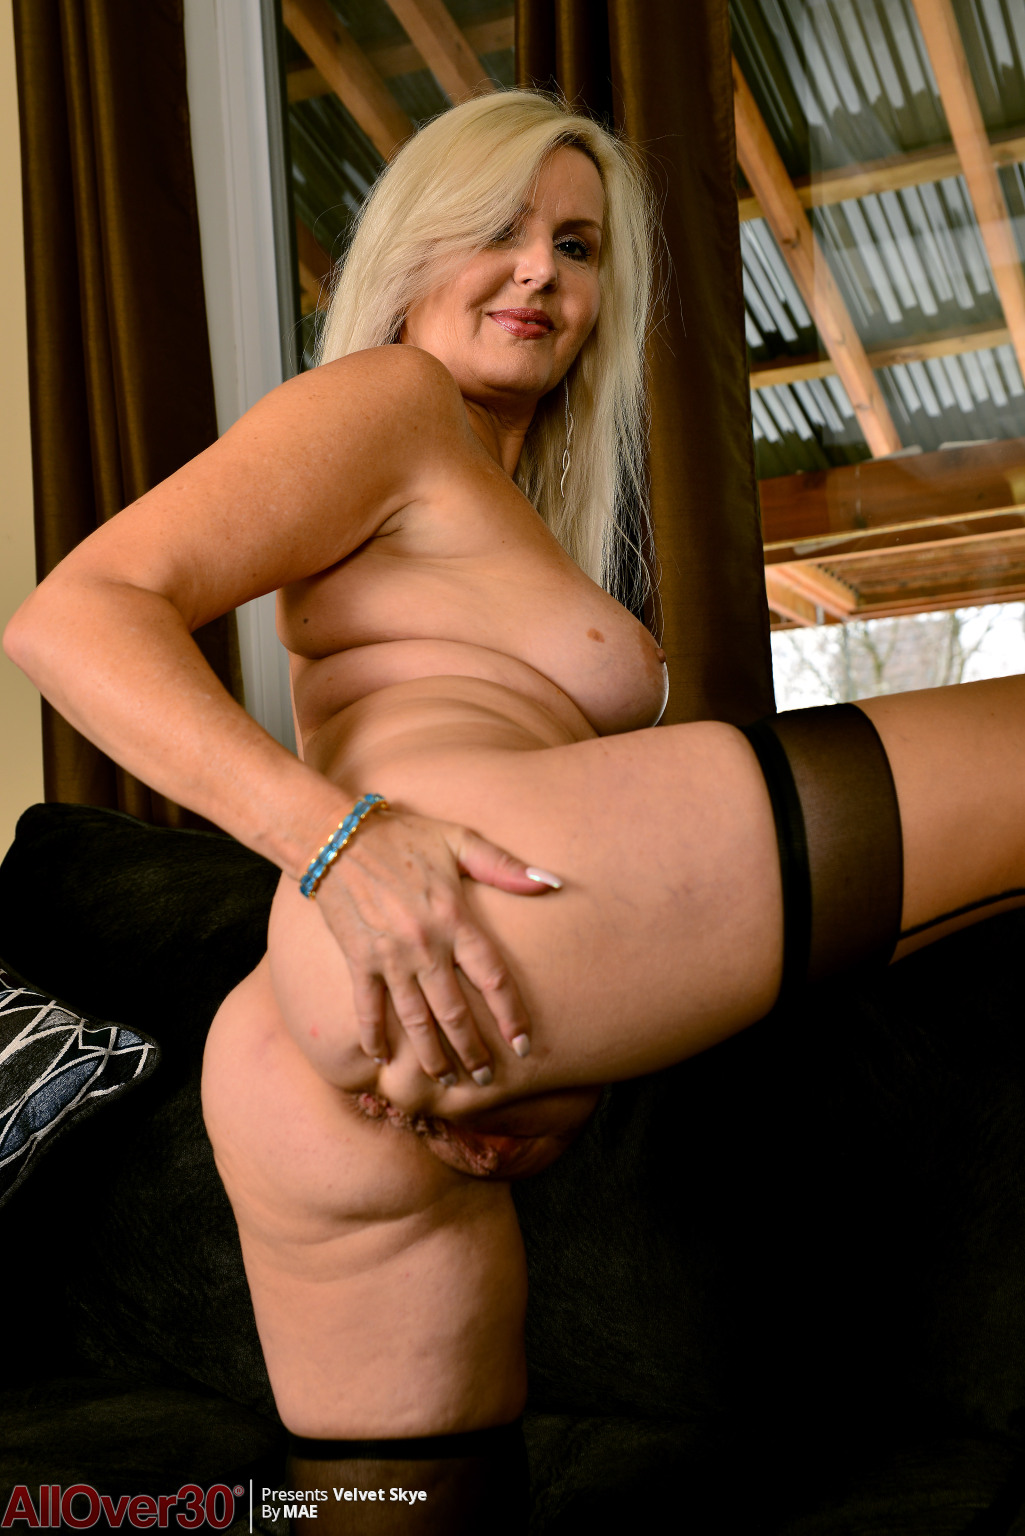 velvet-skye-angelic-mature-beauty-10